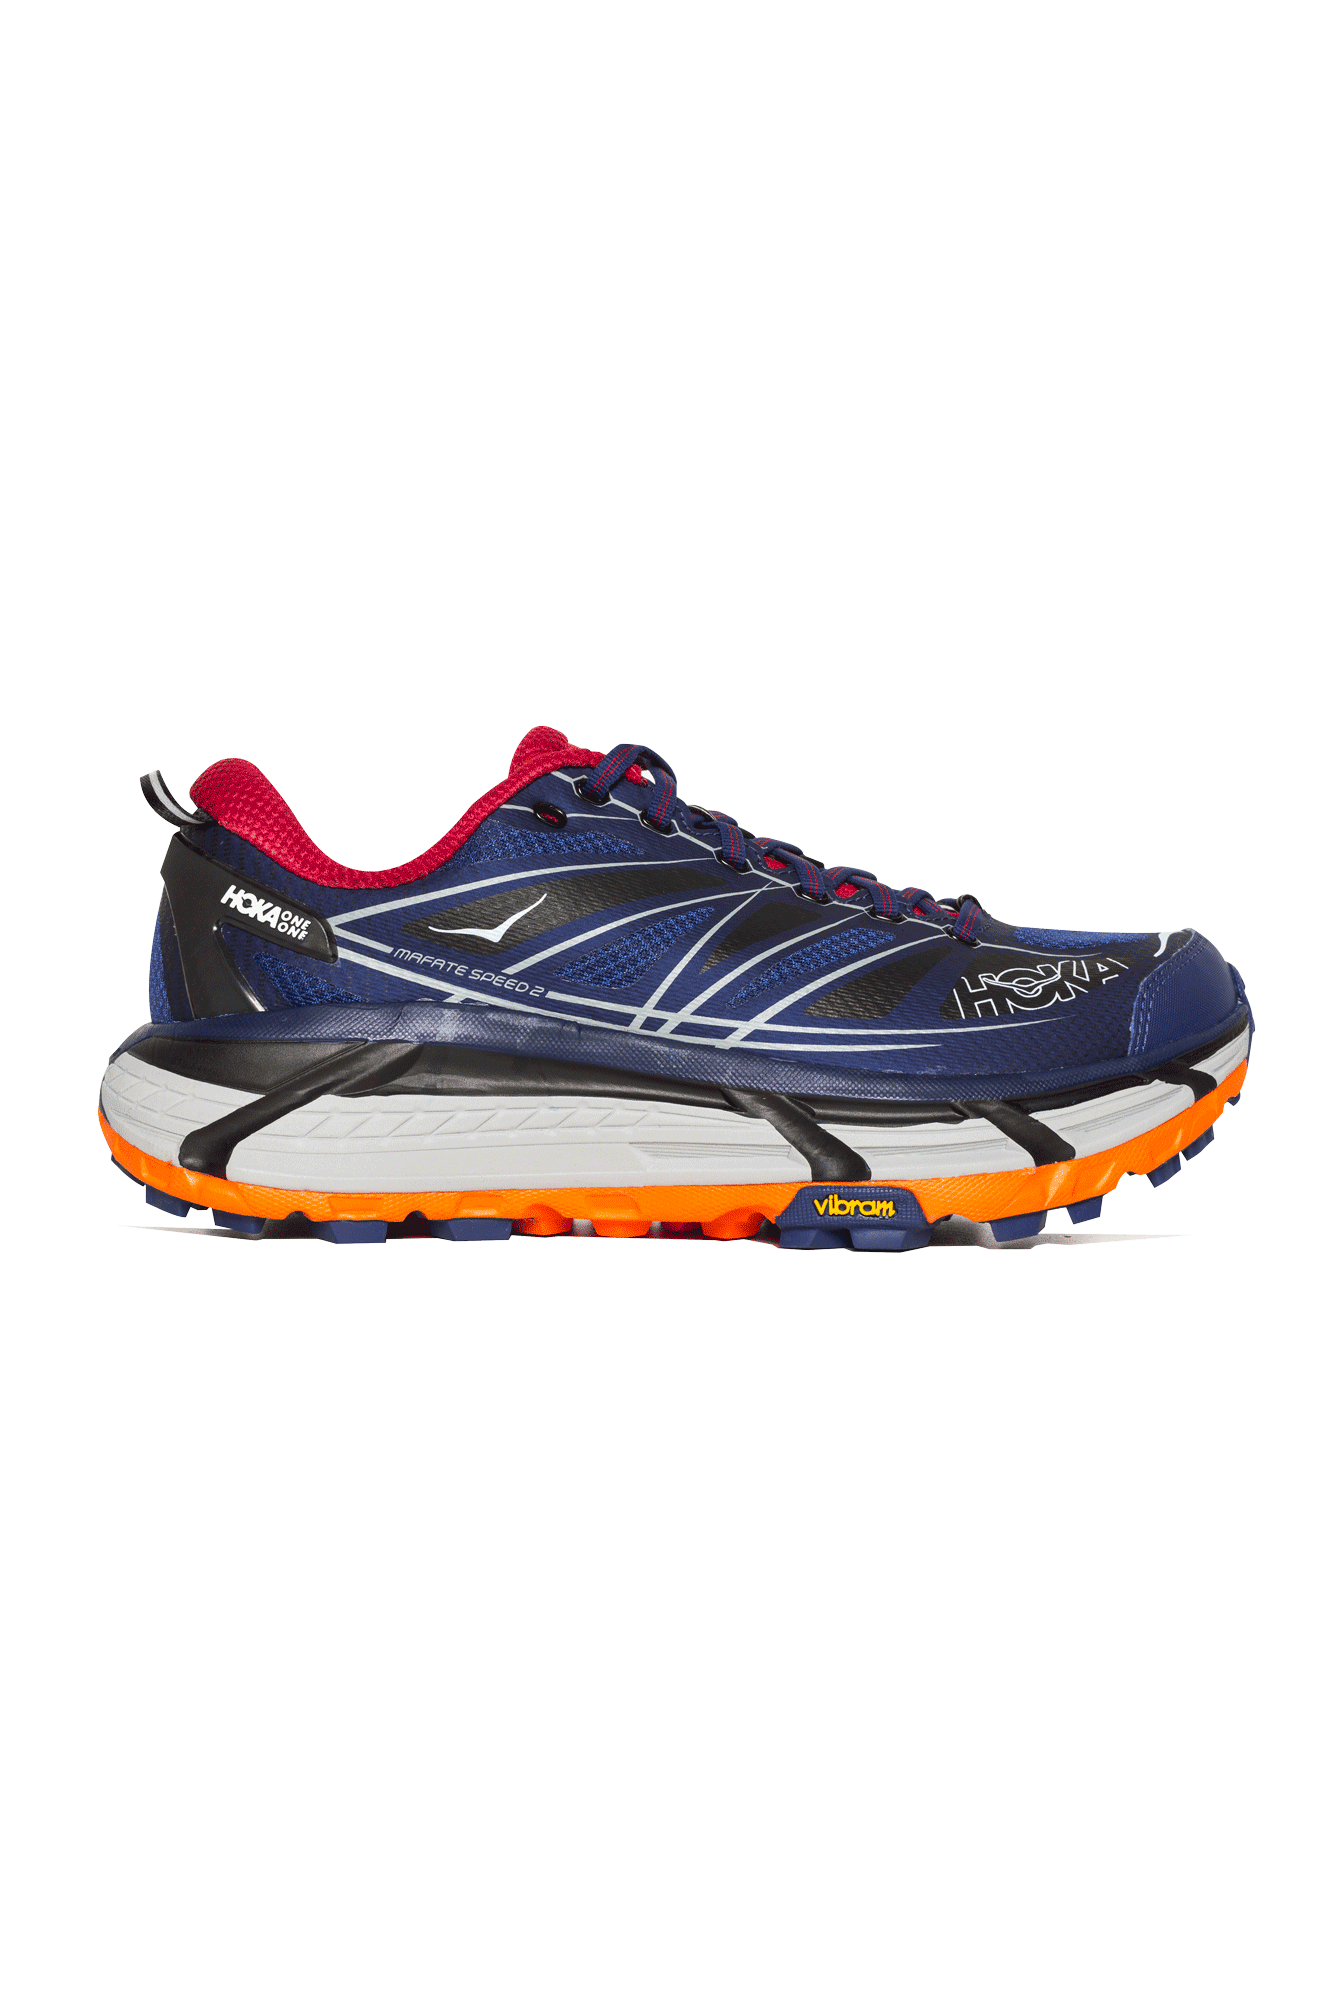 Saucony Trainers for Men: Browse 976+ Products | Stylight